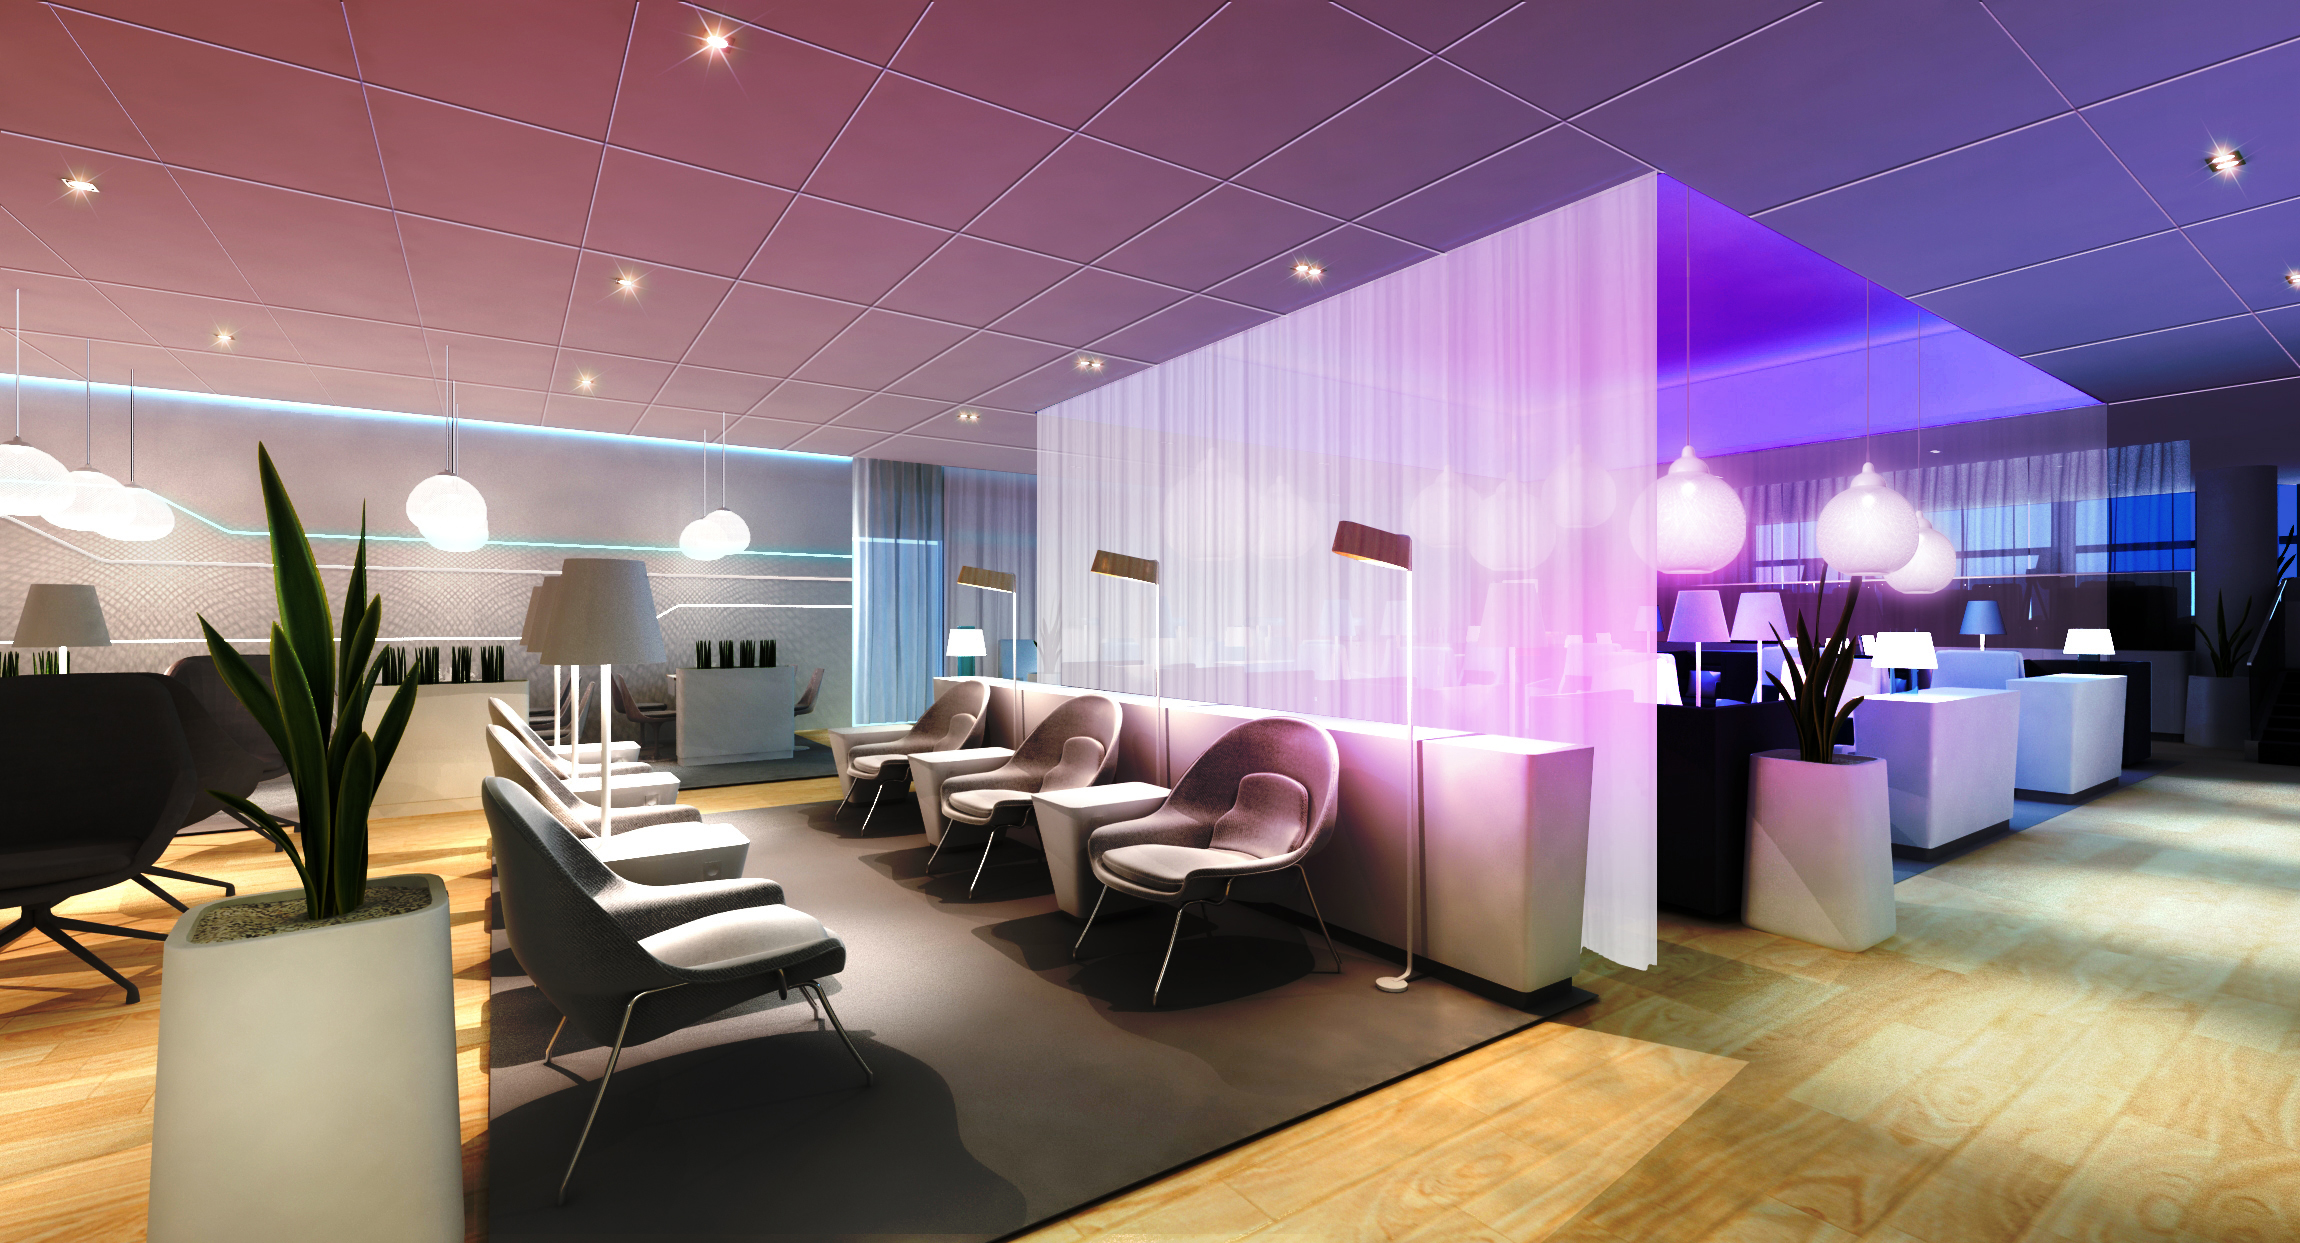 Premium lounge with a sauna has to be finnair thedesignair for Lounge designs